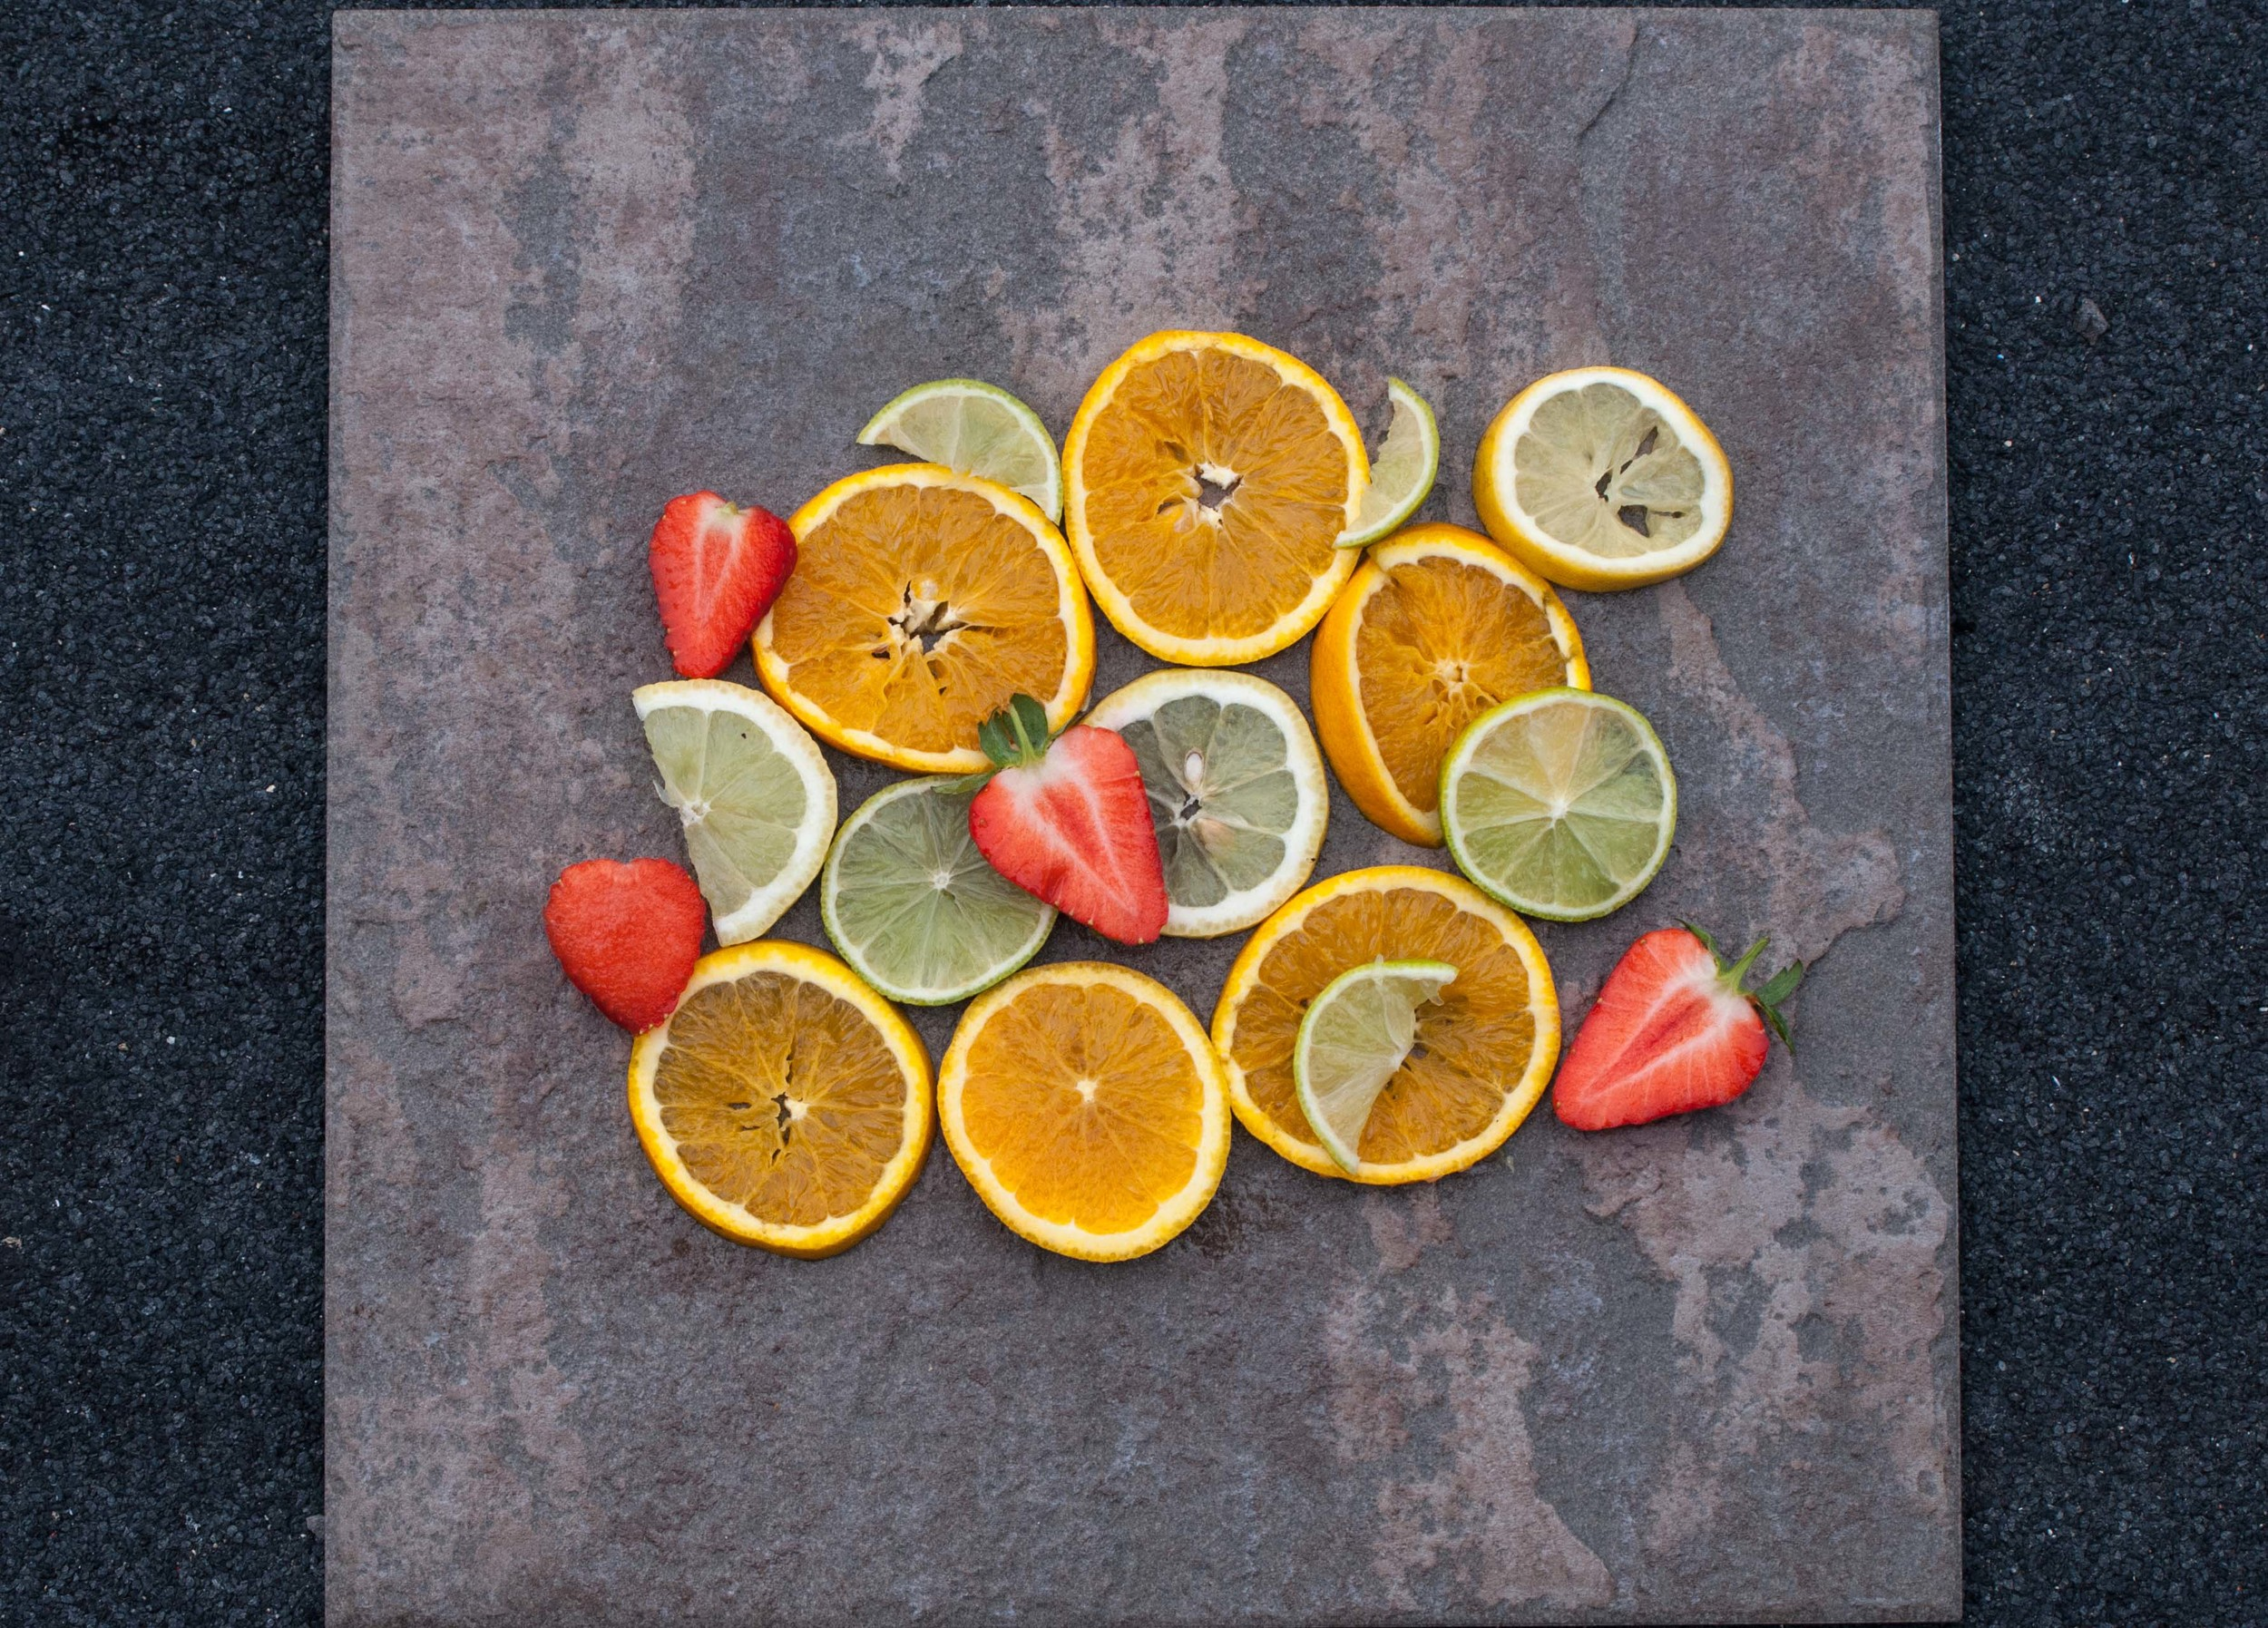 Strawberries, lemons and limes by Katie Vandyck.jpg